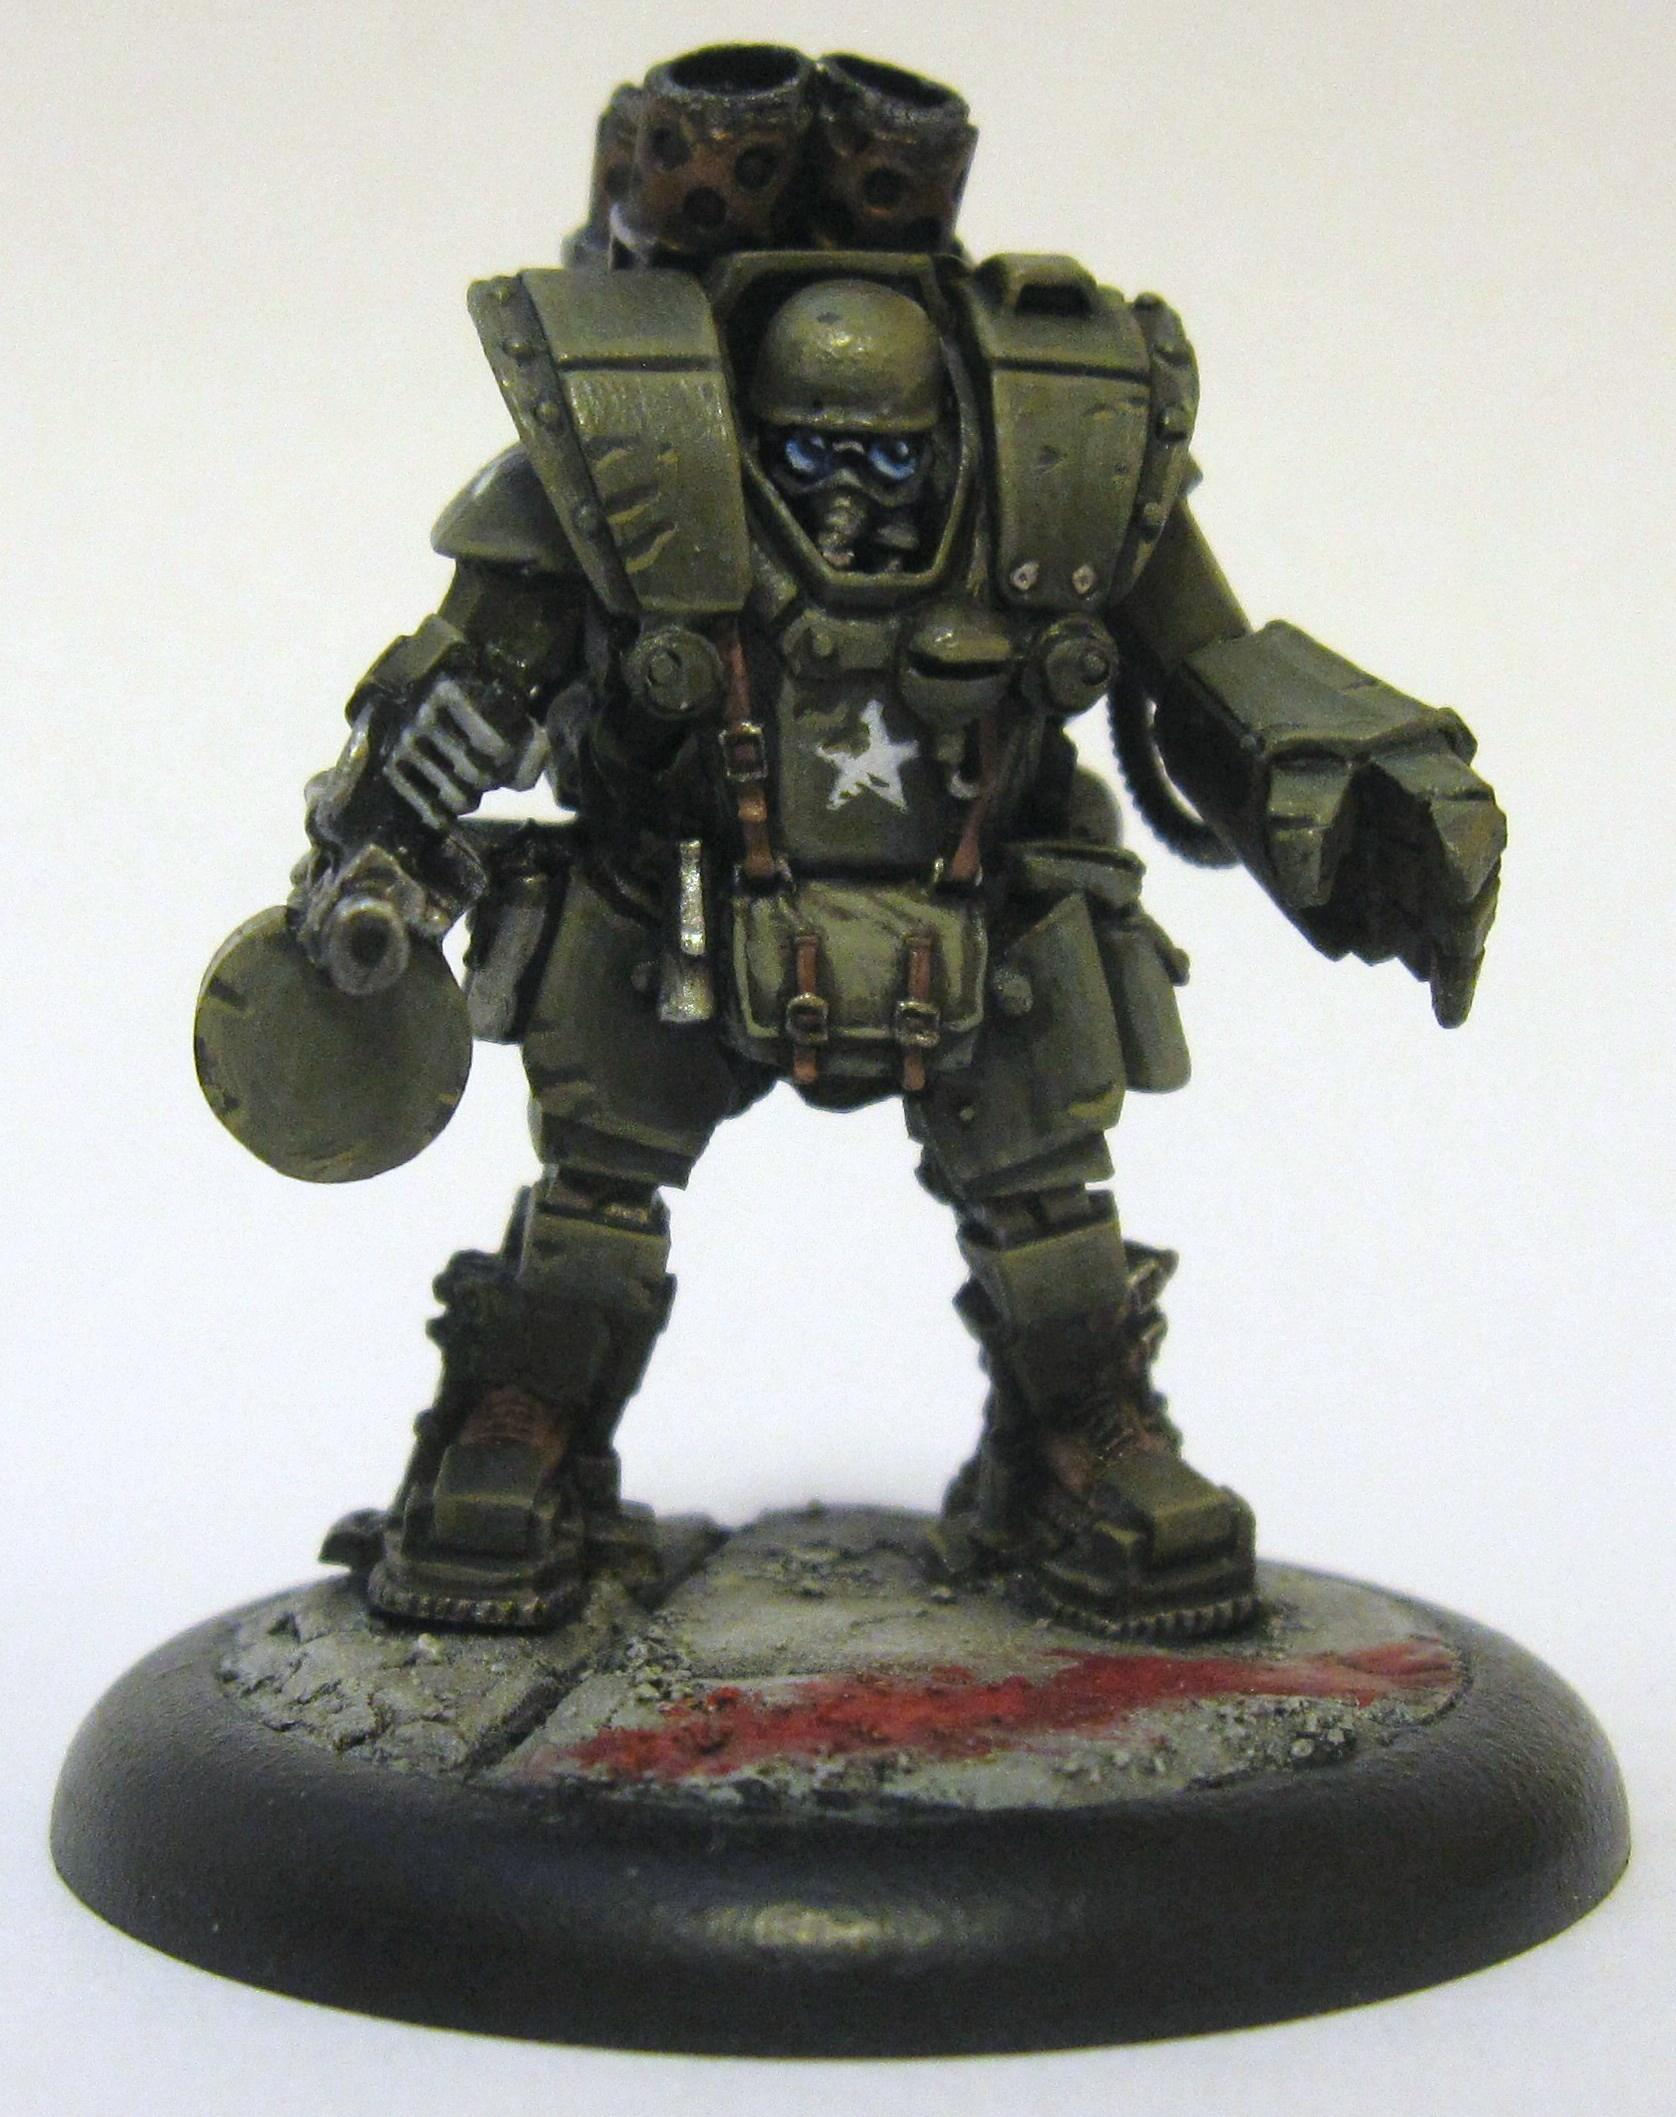 28mm, America, Grindhouse Games, Incursion, Infantry, Power Armor, Science-fiction, Wierd War Ii